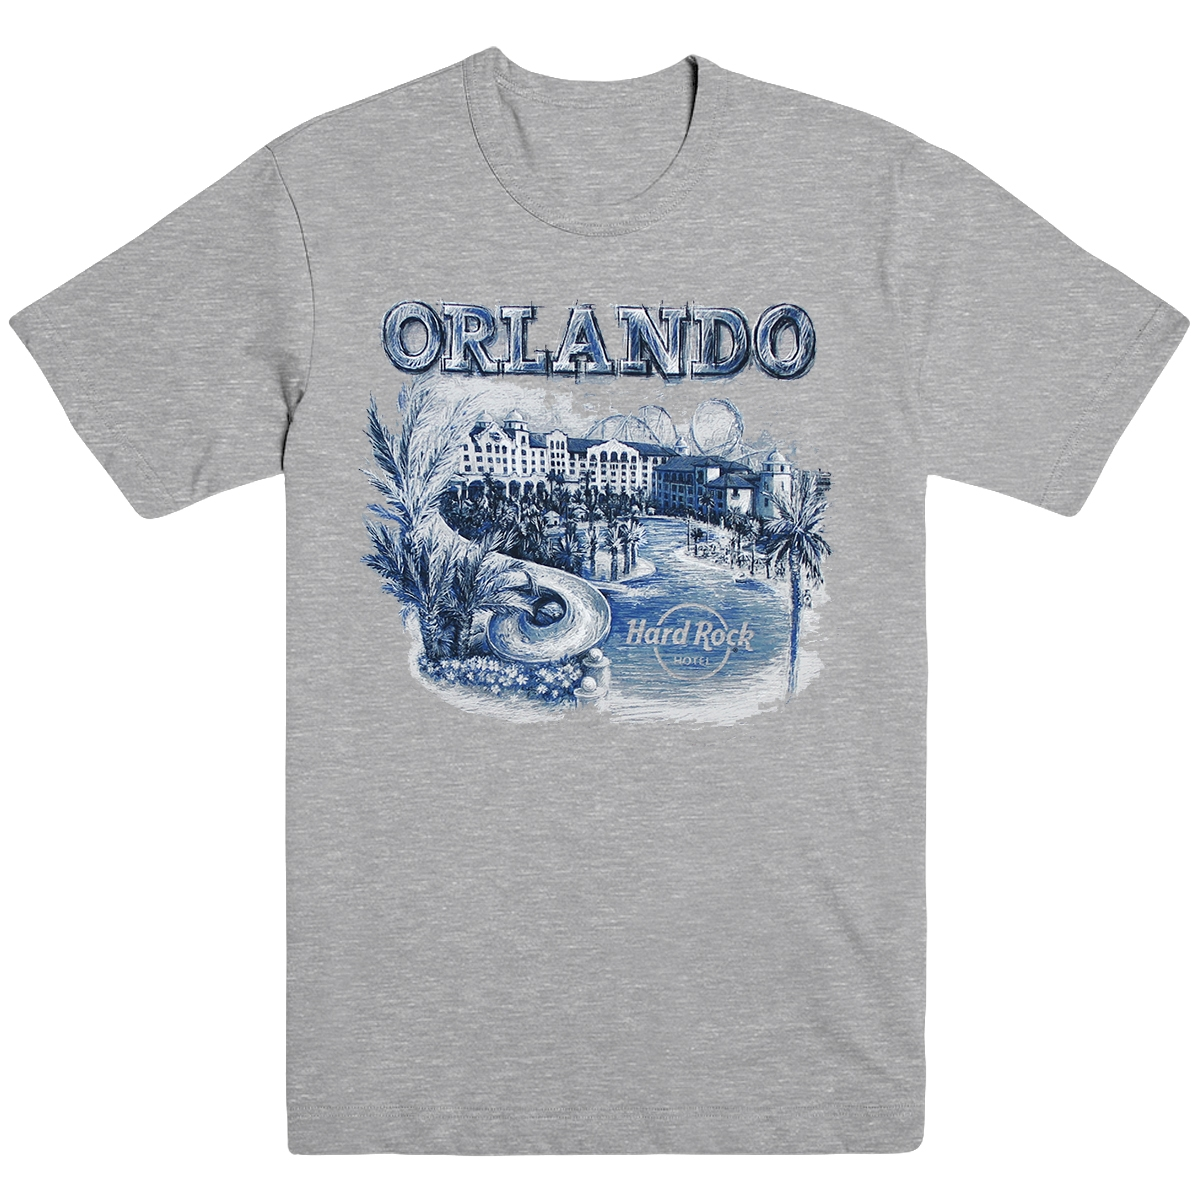 Mens Cityscape Tee Heather Grey, Orlando Hotel 0